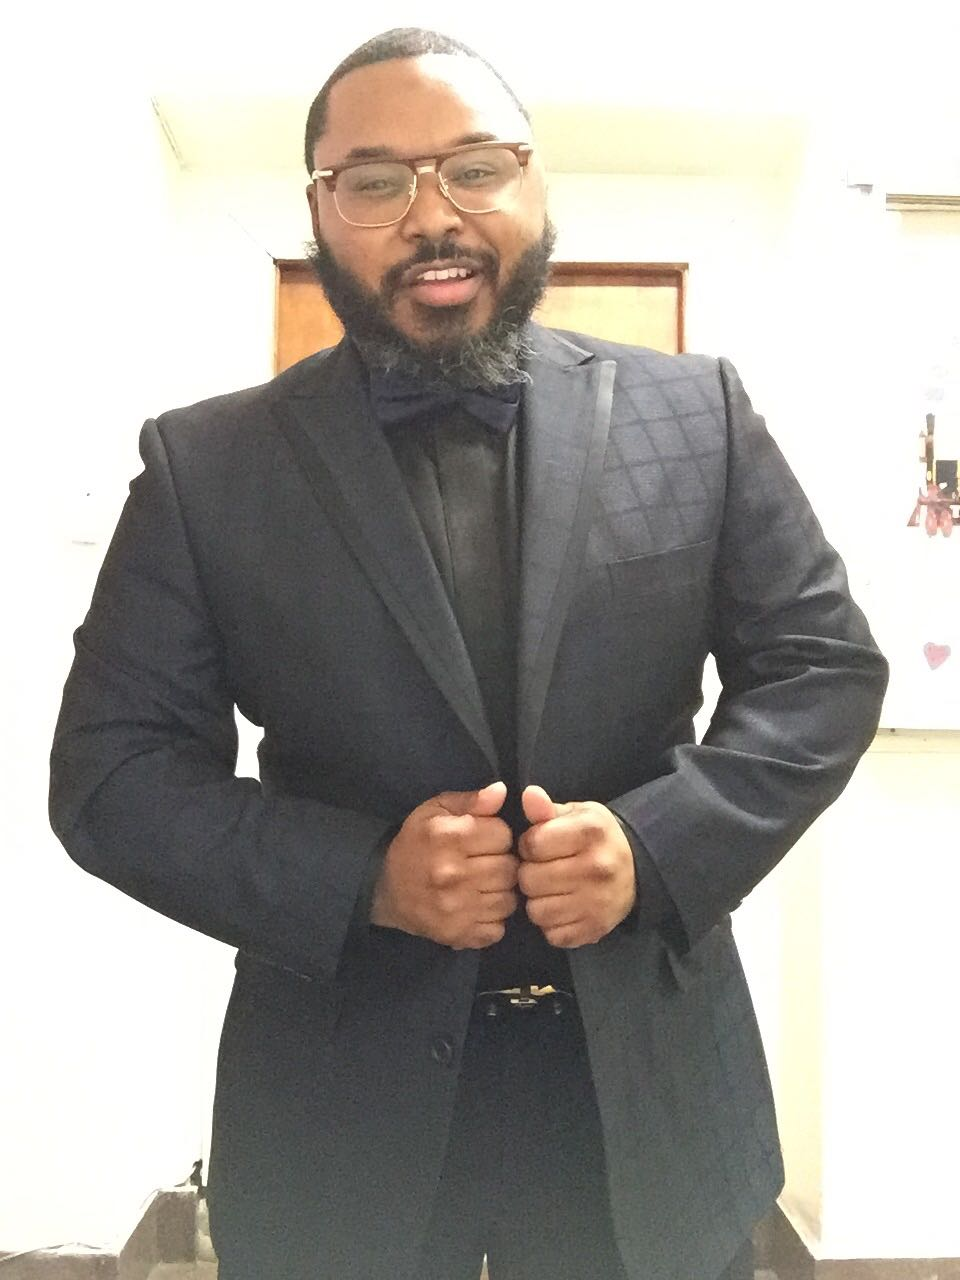 XL's Featured Tribes Men Of The Week: Corey Jefferson